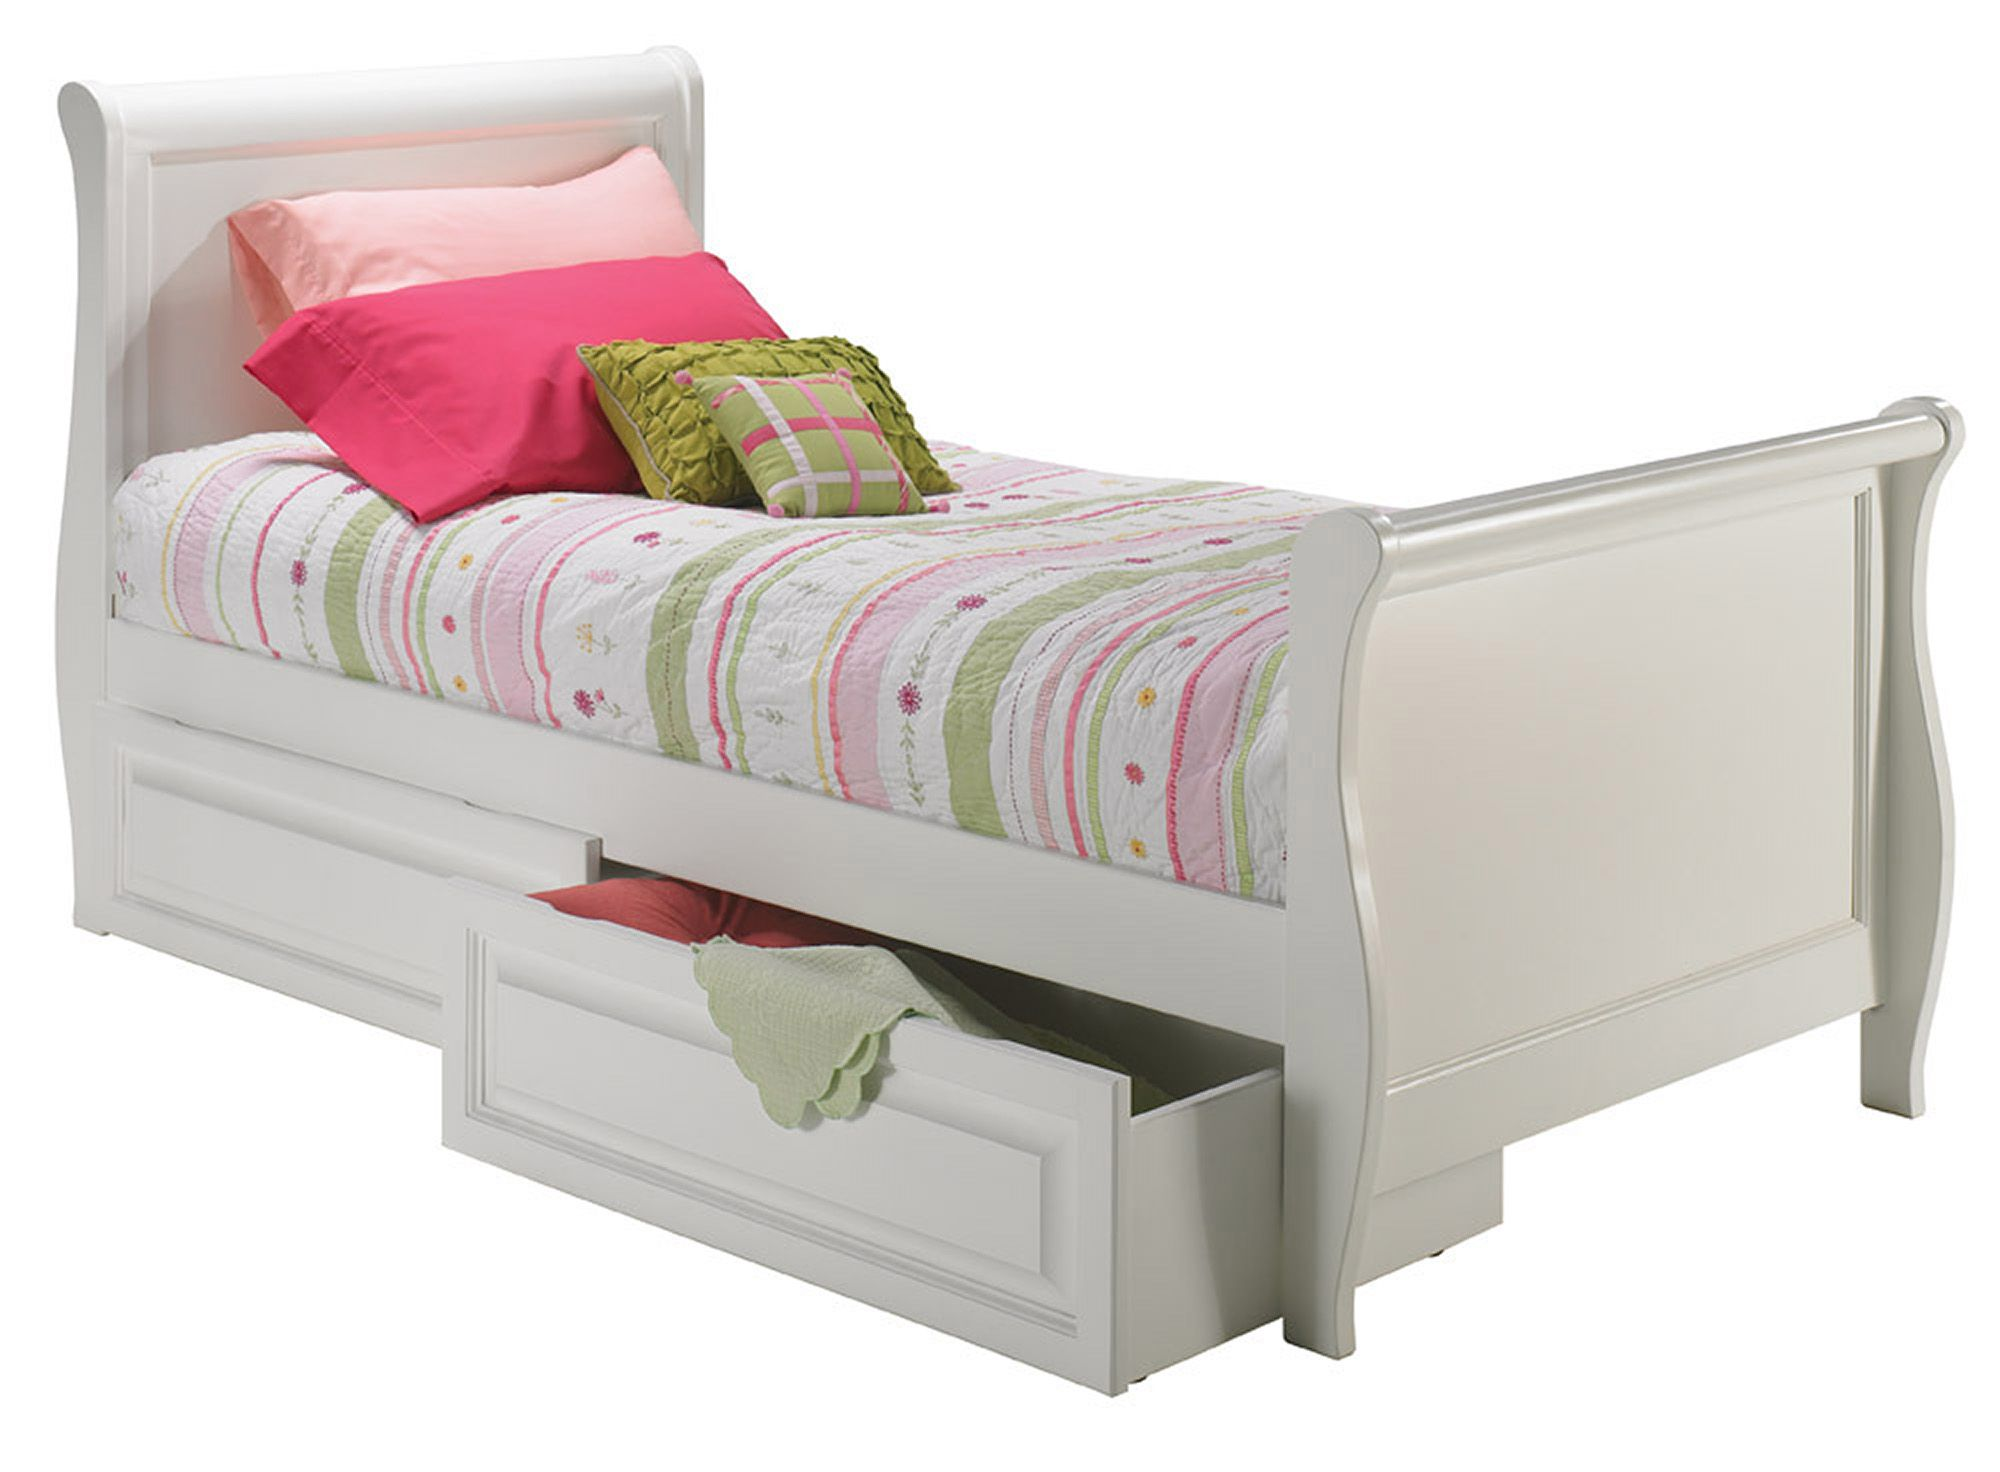 Foremost Furniture Brand Standard Furniture By The Classy Home; The  Manufacturers Of Value Furniture,